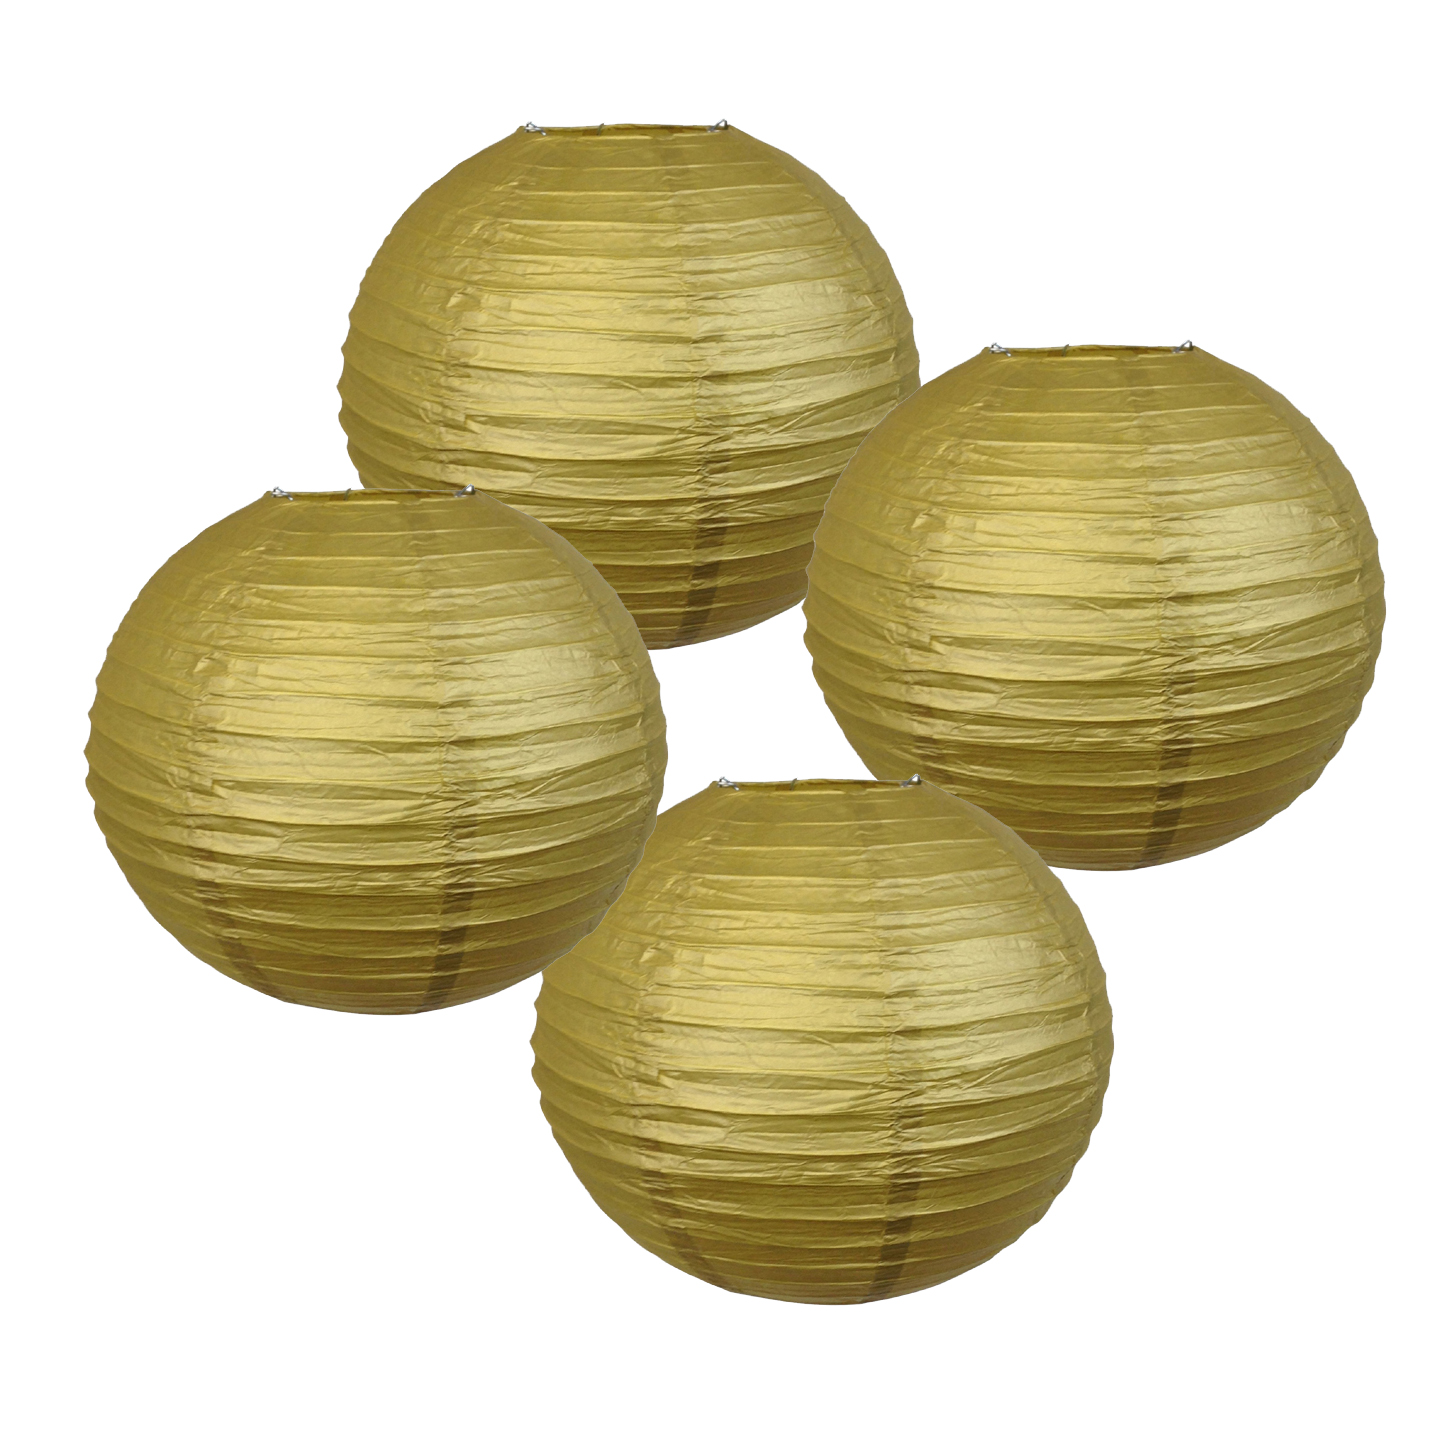 "Just Artifacts 14"" Gold Chinese Japanese Paper Lanterns (Set of 4) - Decorative Round Chinese/Japanese Paper Lanterns for Birthday Parties, Weddings, Baby Showers, and Life Celebrations!"